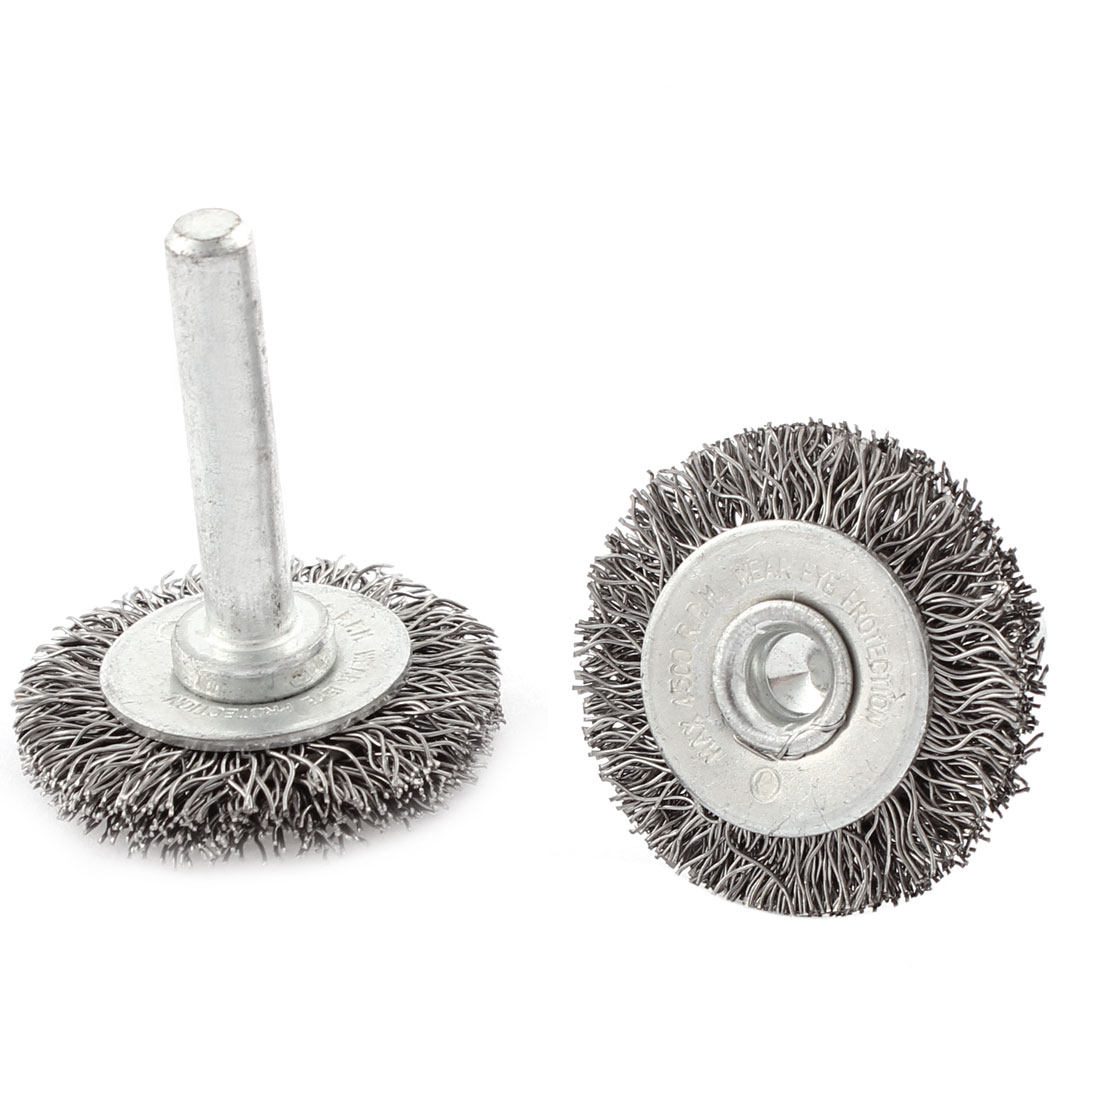 2pcs 33 x 6mm Steel Wire Polishing Buffing Wheels Grinding Brushes Rotary Tool